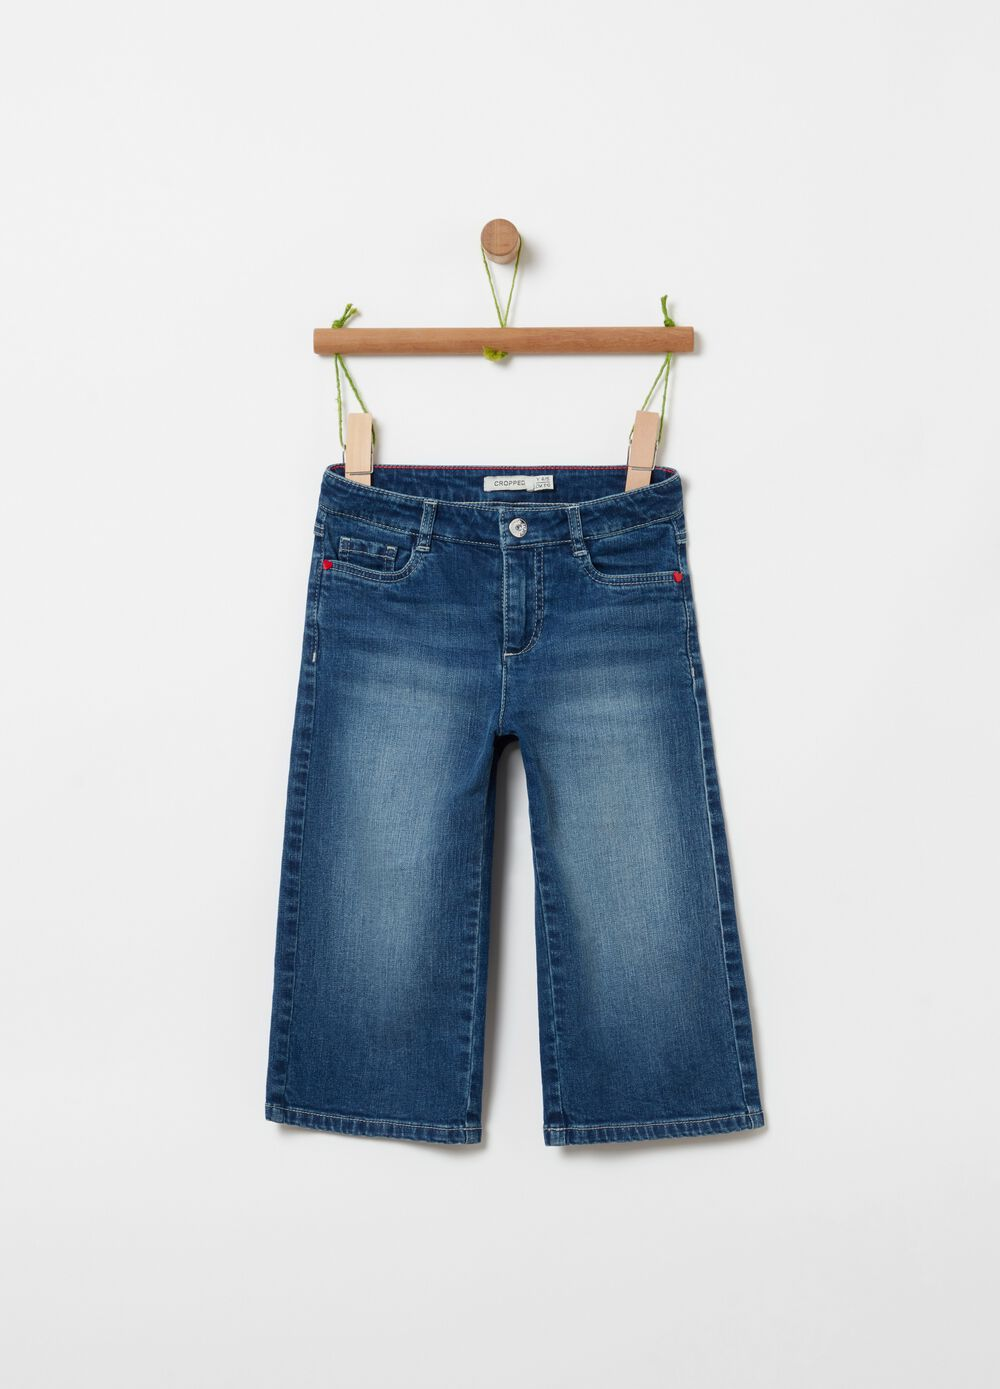 Cropped jeans with 5 pockets